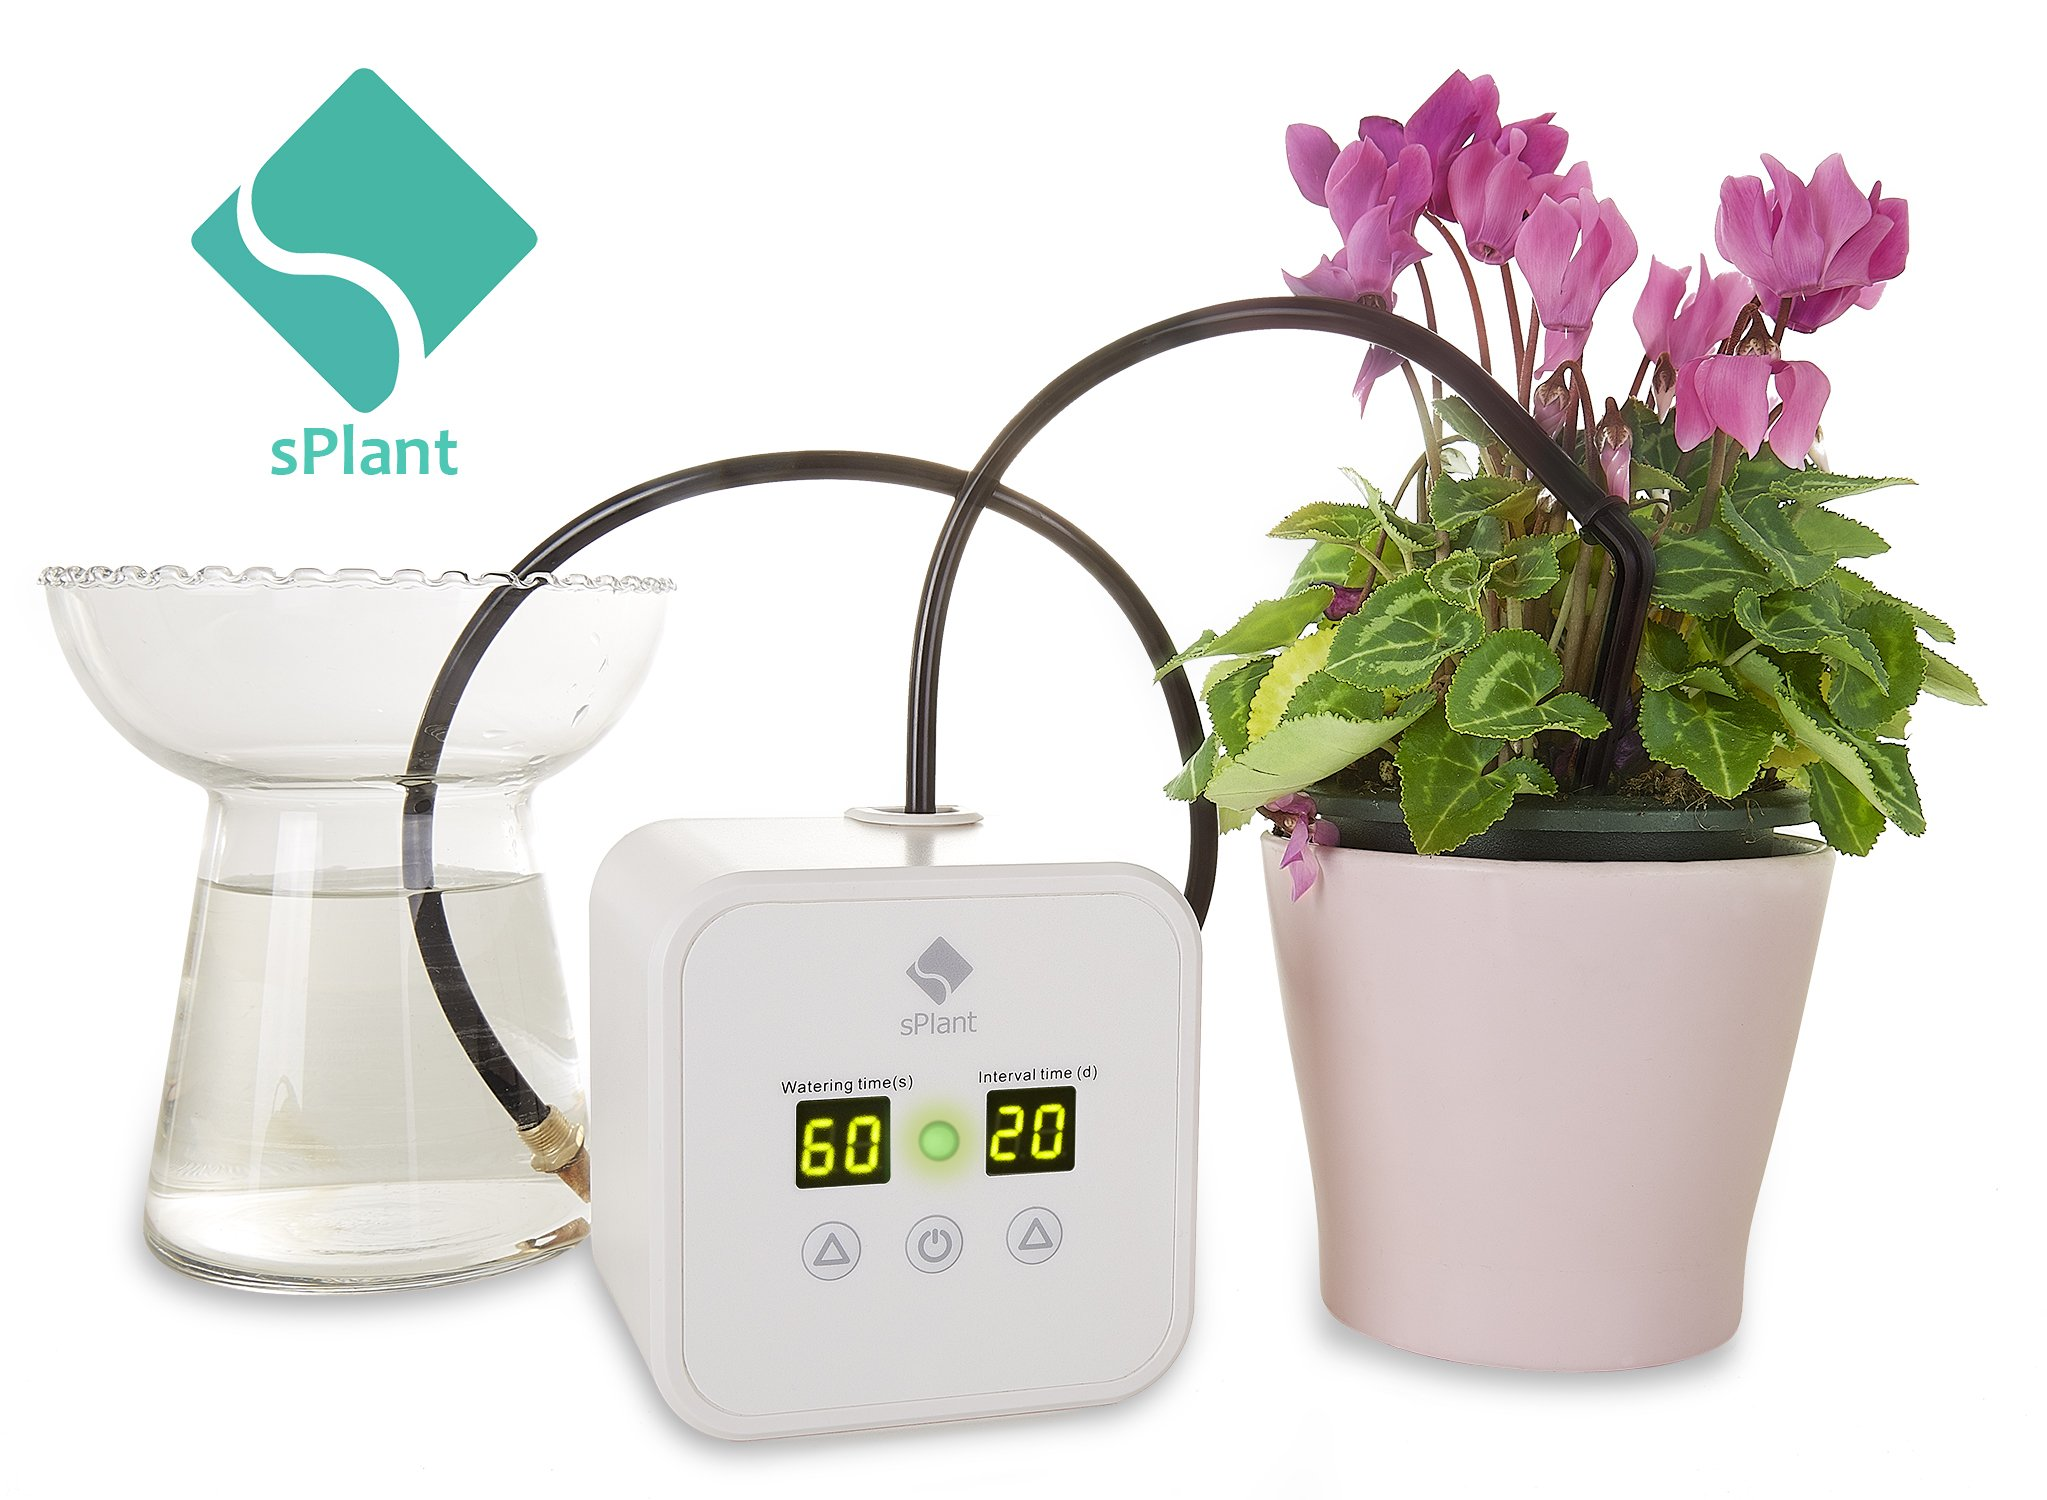 sPlant Micro Automatic Drip Irrigation Kit, Self-Watering Stakes, Auto Watering for Indoor Potted plant,Watering Can Indoor,Time Self Watering for Houseplant,Vacation Plant Watering System